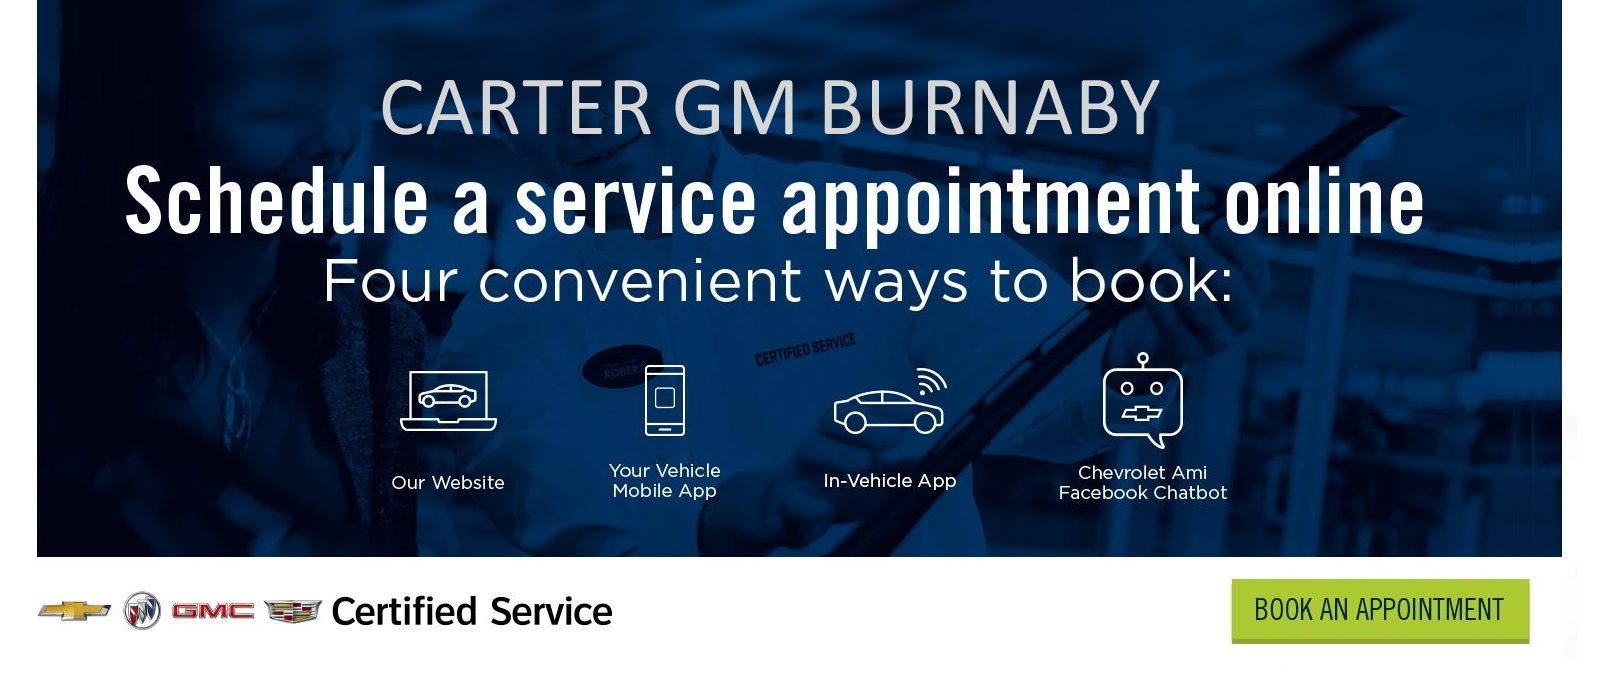 best priced local certified gm carter burnaby book online or in-vehicle app today bc